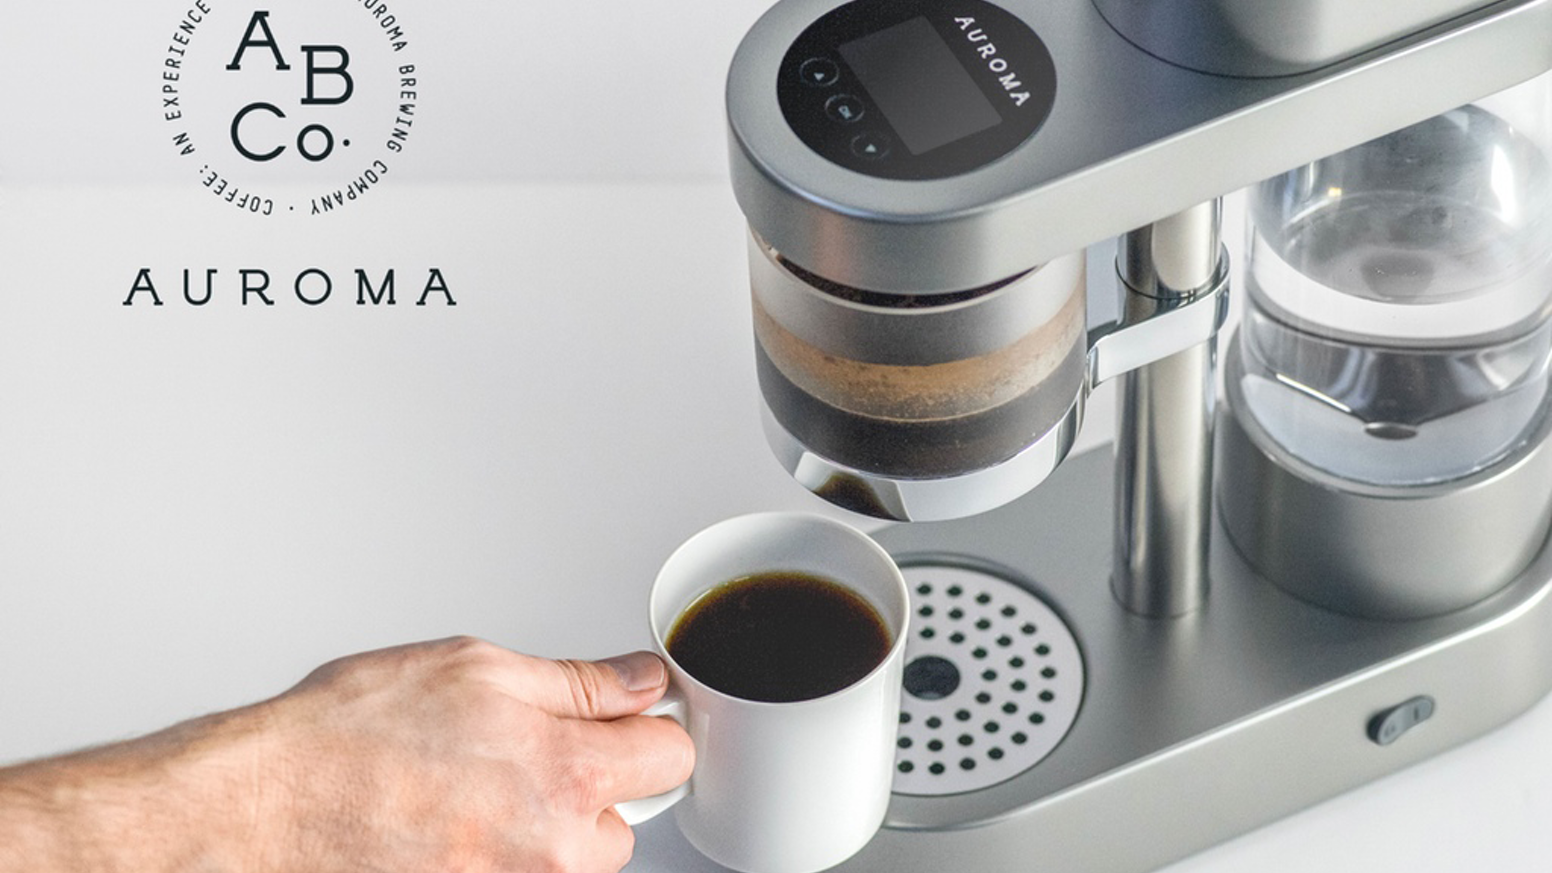 ALL-IN-ONE PRECISION GRIND & BREW. Designed for one purpose- Brew amazing coffee every time.